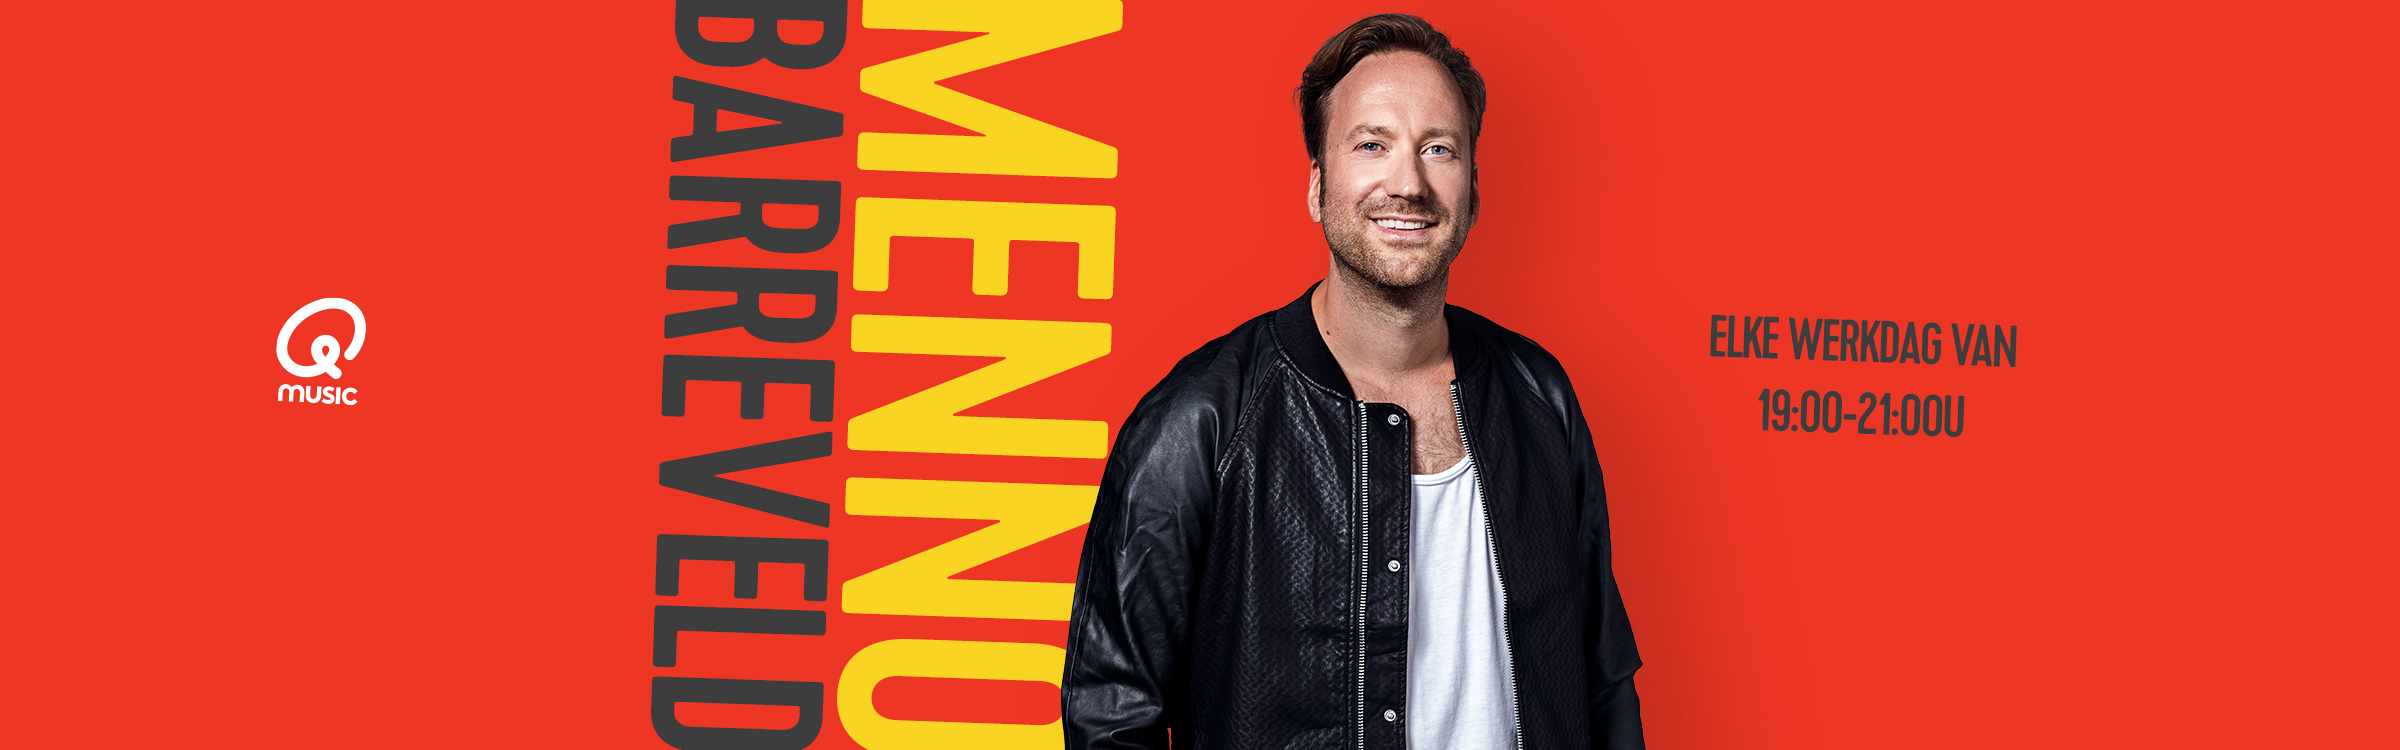 Qmusic actionheader menno